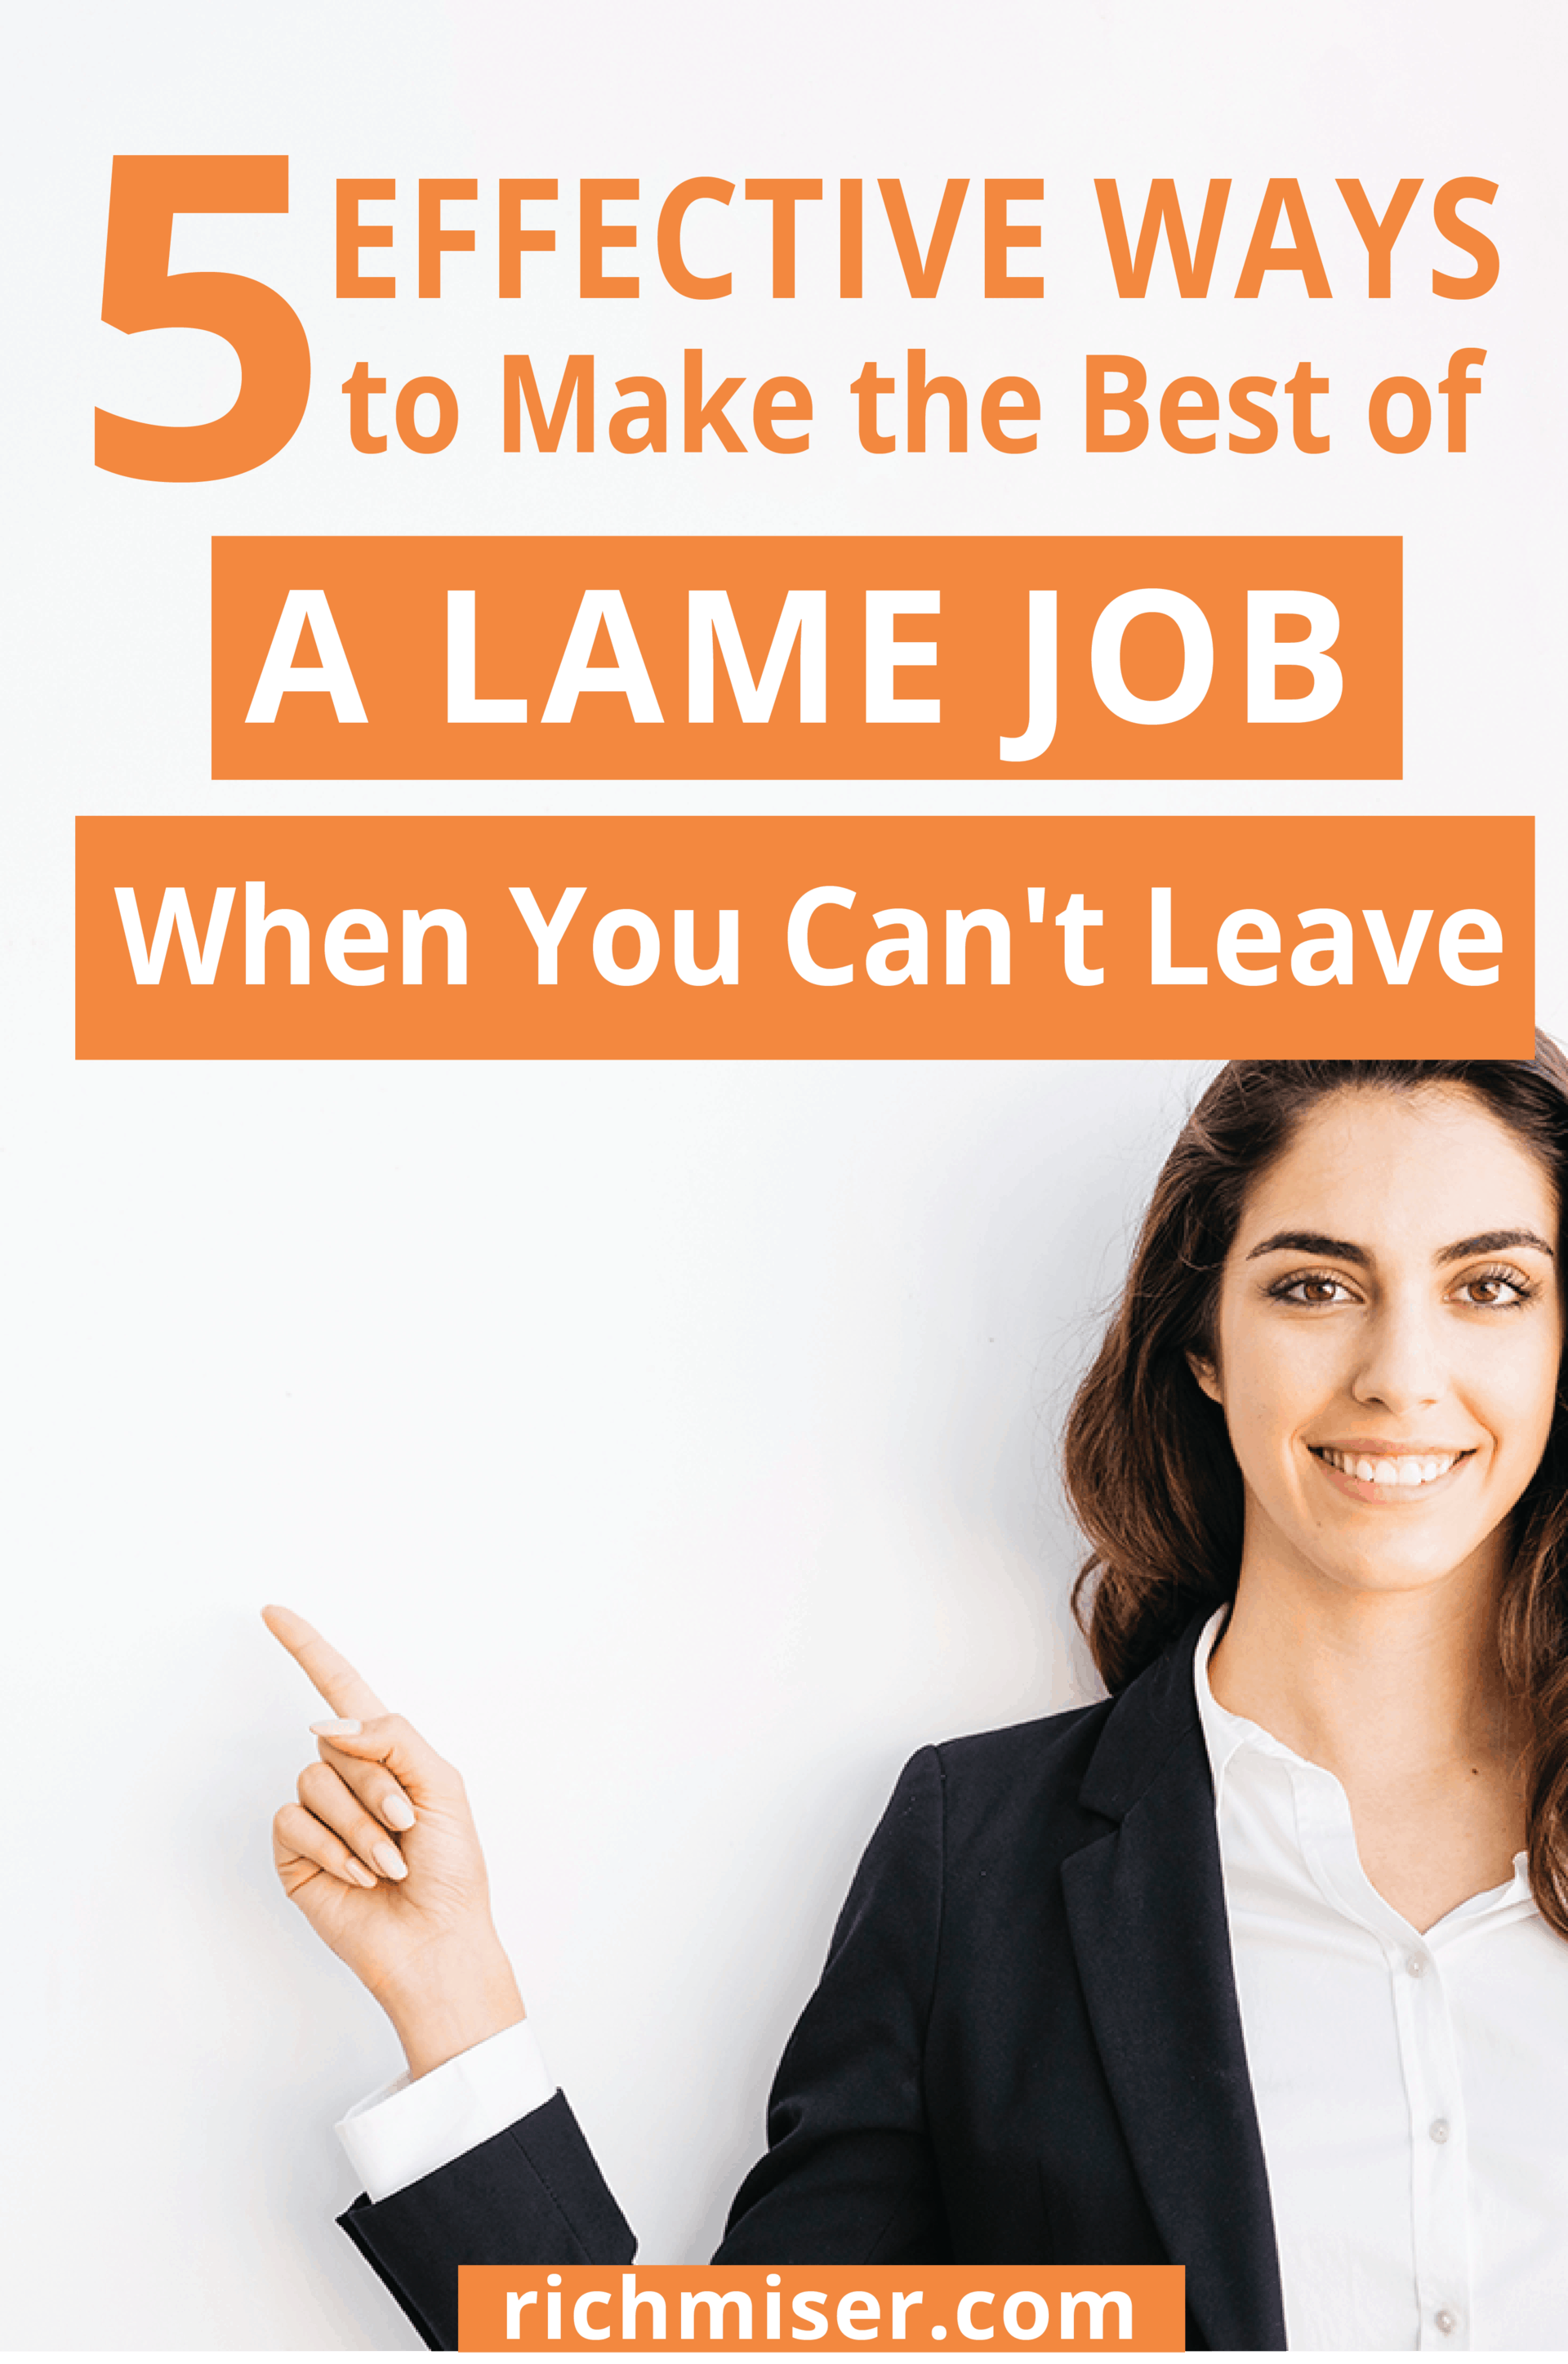 5 Effective Ways to Make the Best of a Lame Job When You Can't Leave